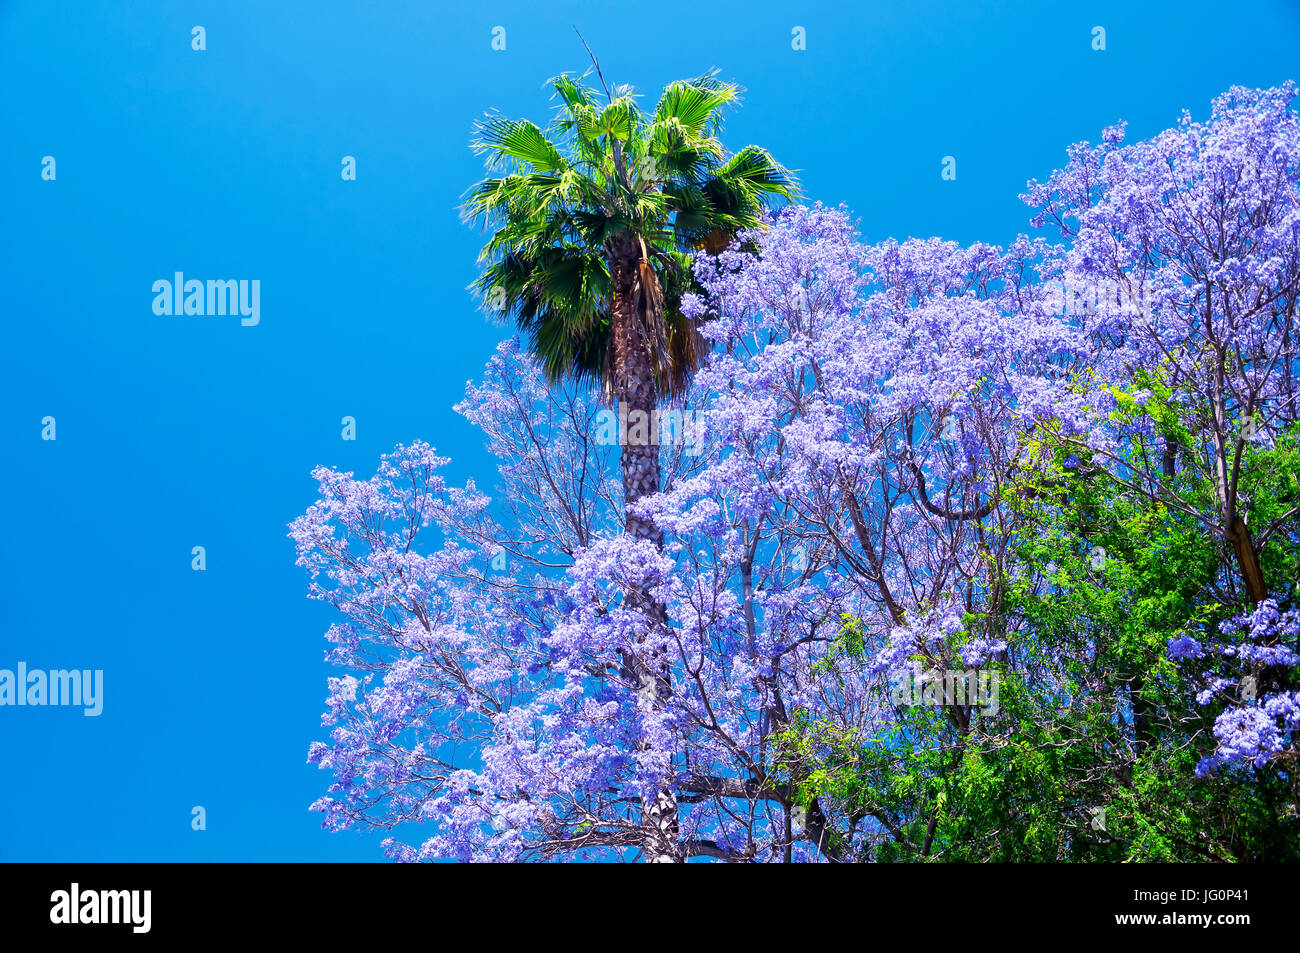 A palm tree and purple flowering trees in the hollywood area of los a palm tree and purple flowering trees in the hollywood area of los angeles in the spring in california izmirmasajfo